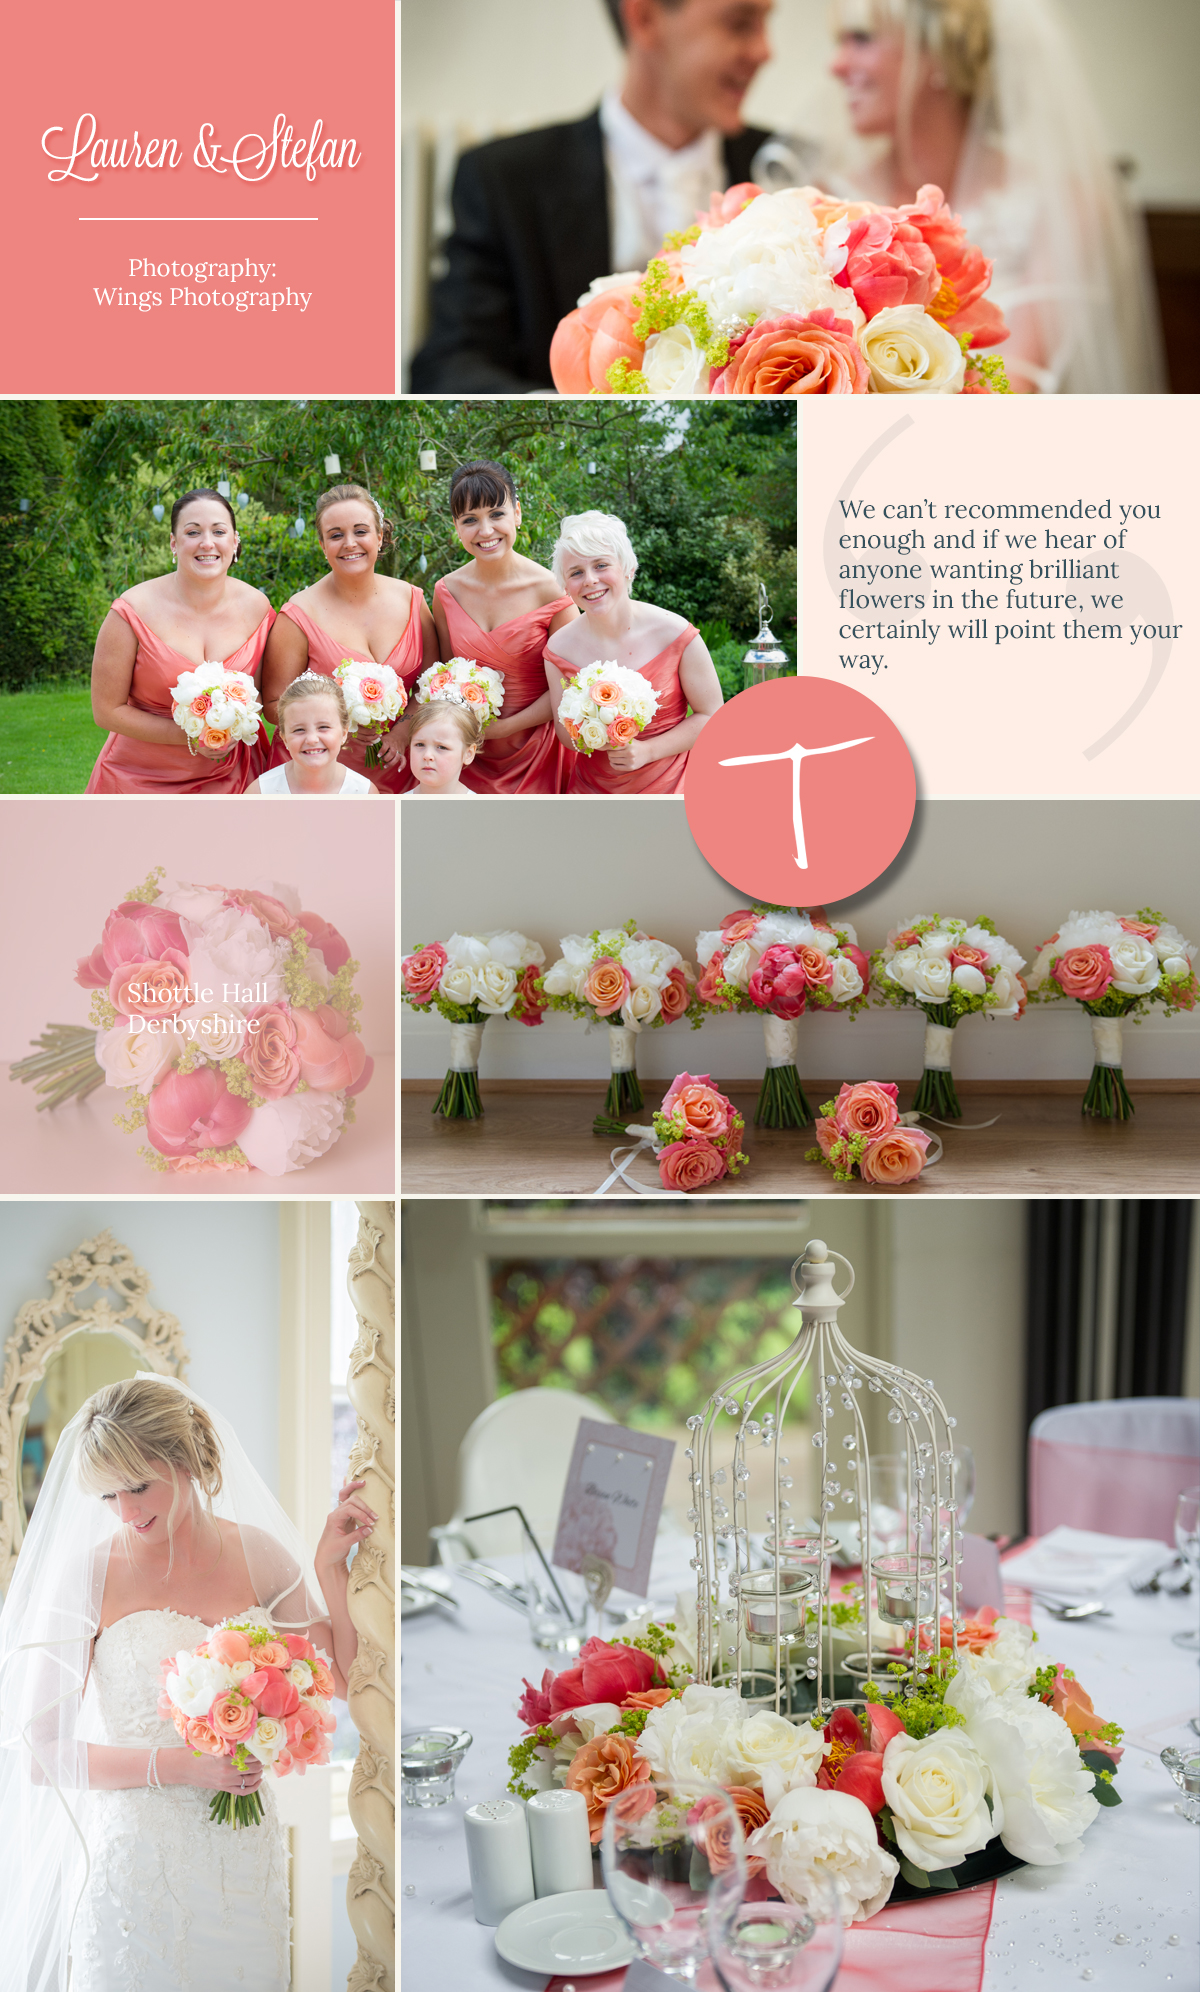 Vibrant wedding flowers with peonies for a shottle hall wedding. Designed by Tineke floral designs in Derbyshire